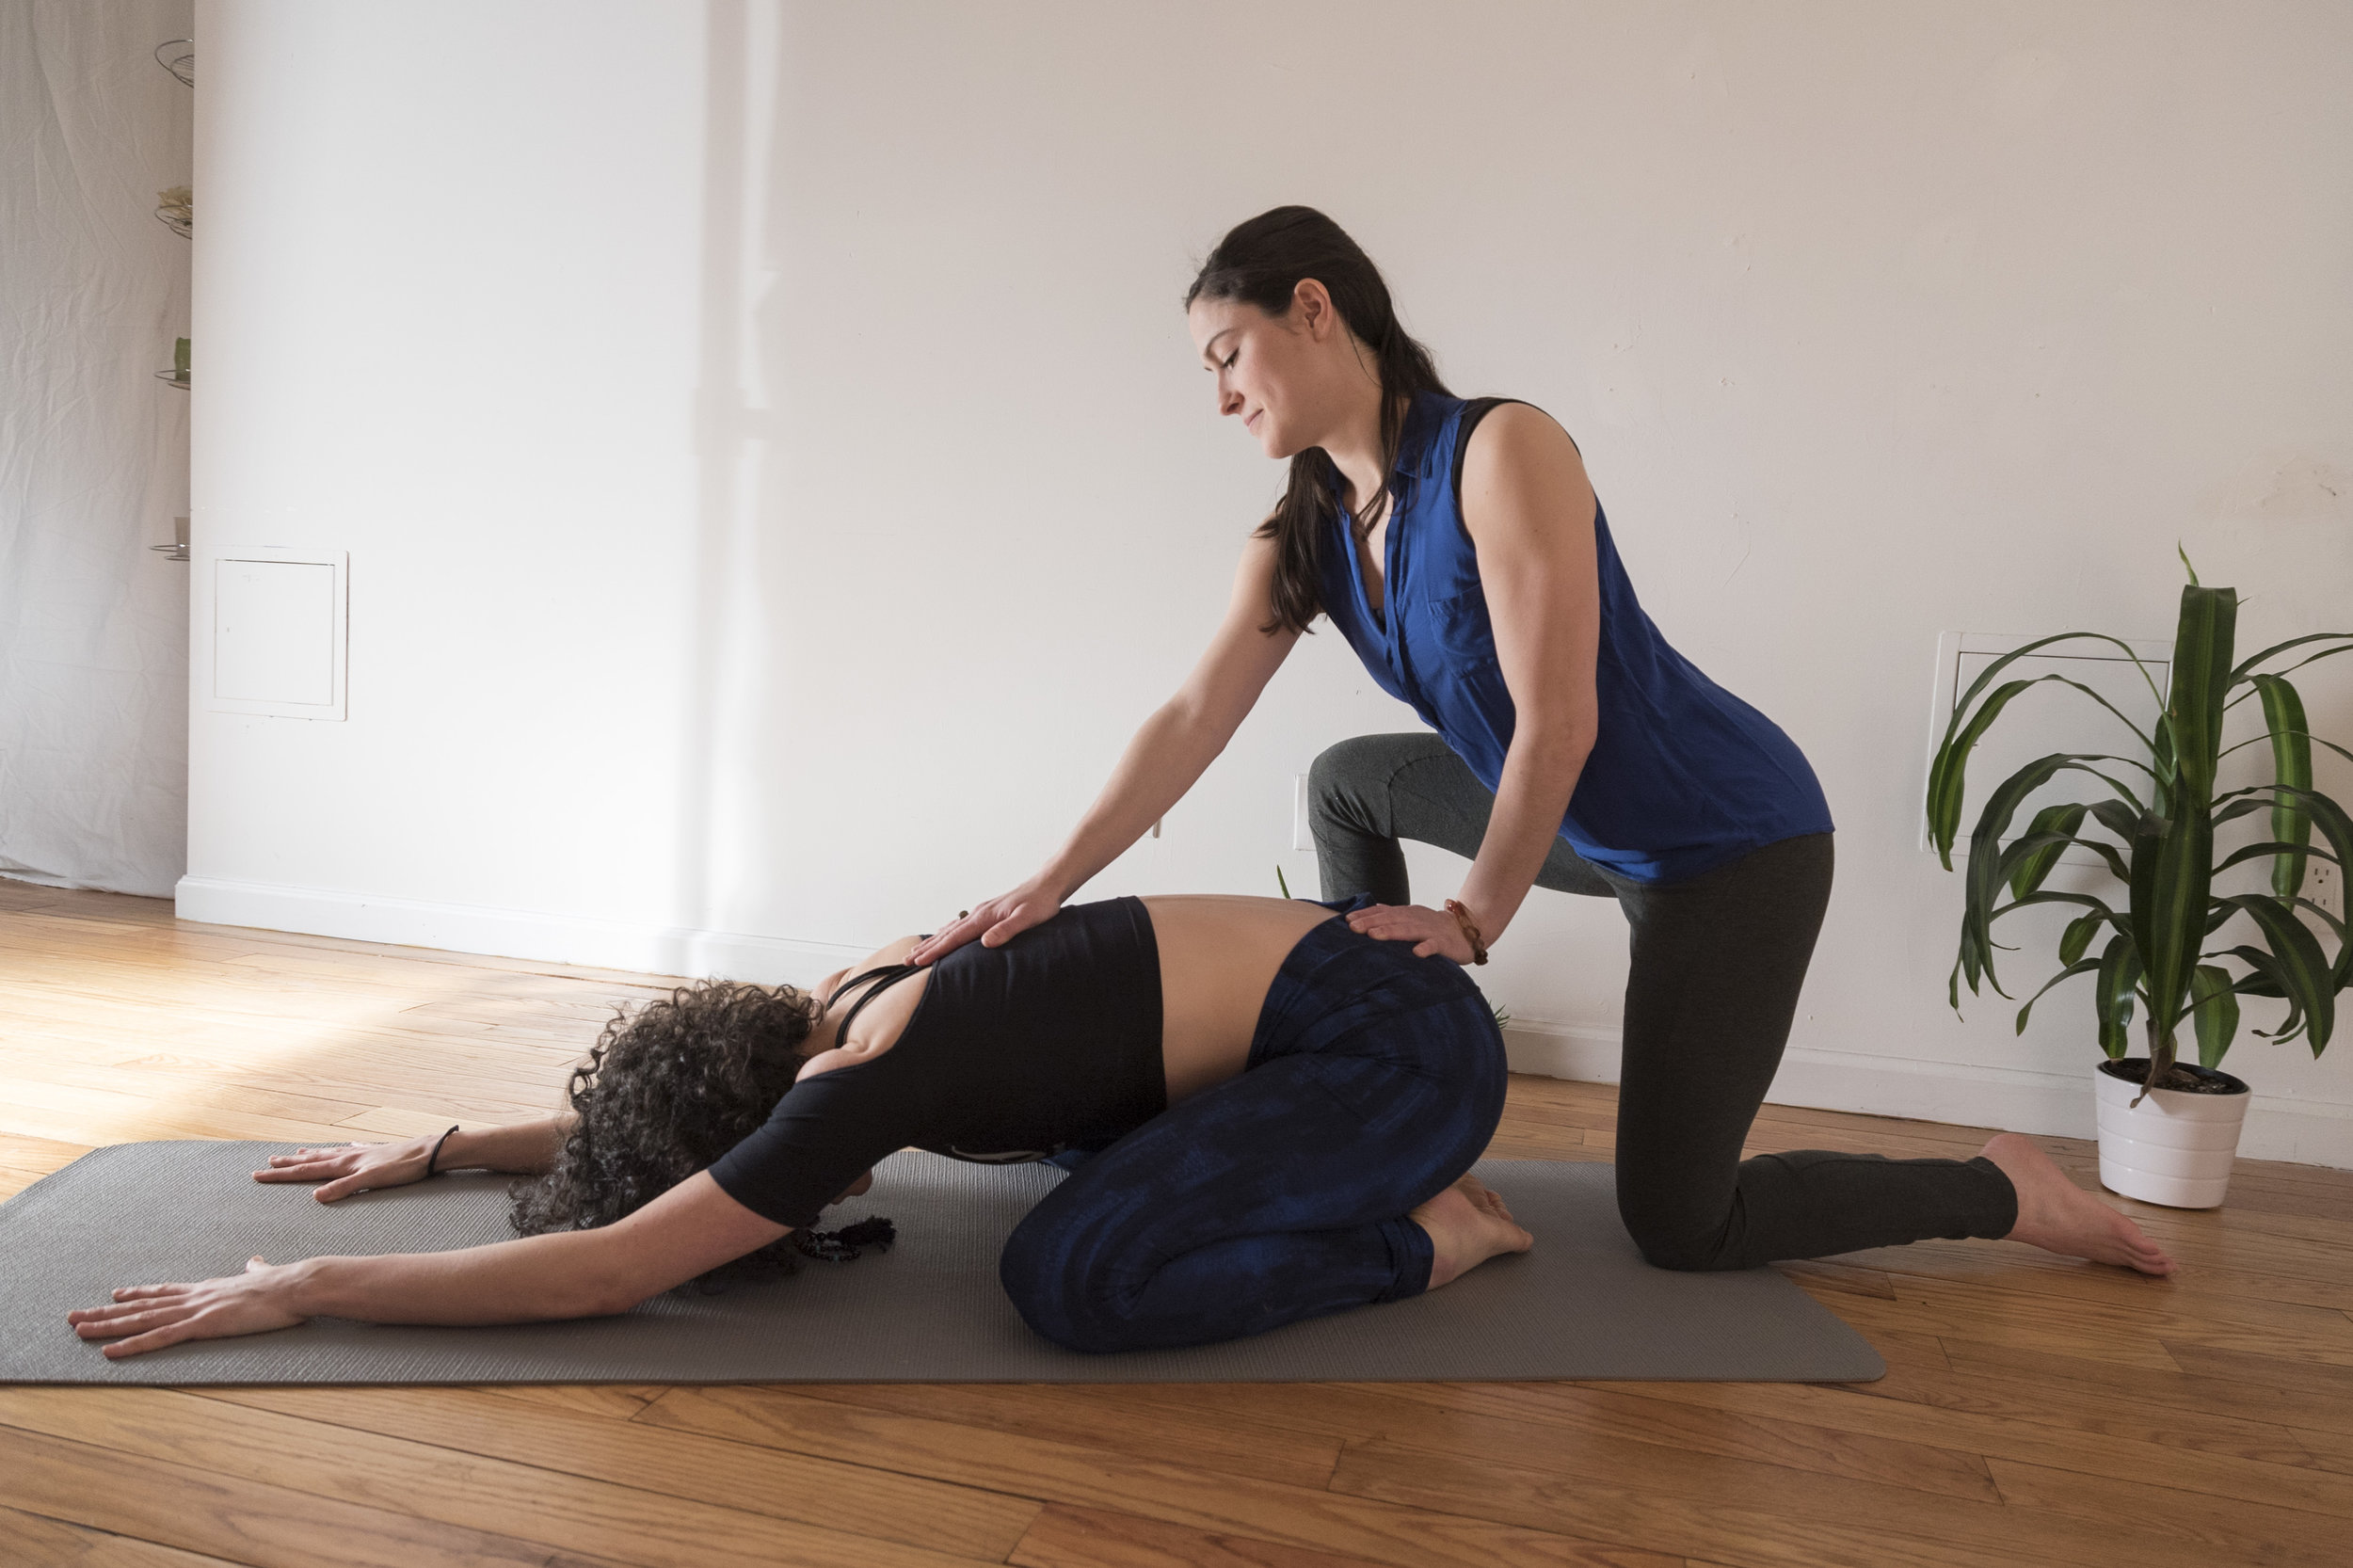 Private Yoga - Customized Sessions to support your wellness goals, in the convenience of your own home